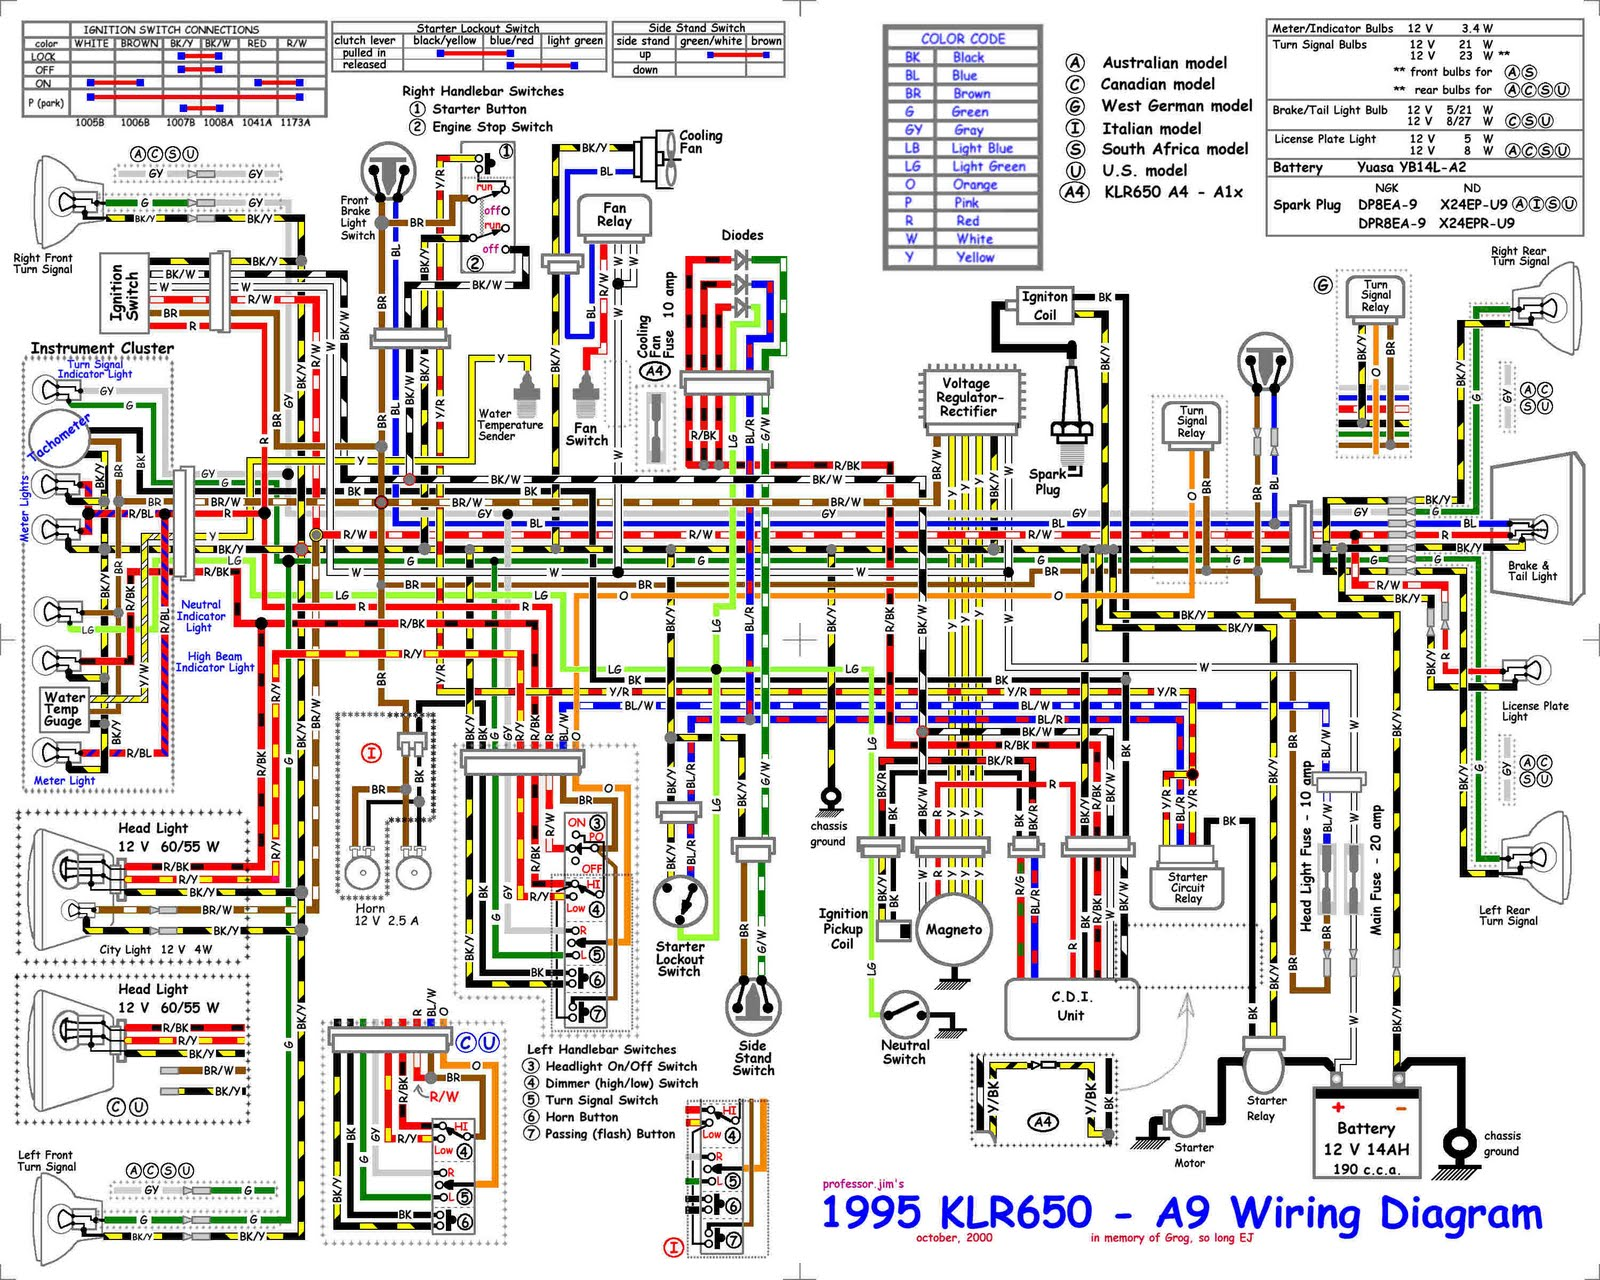 1974 Chevrolet Monte Carlo Wiring on 2003 mitsubishi eclipse stereo wiring harness diagram